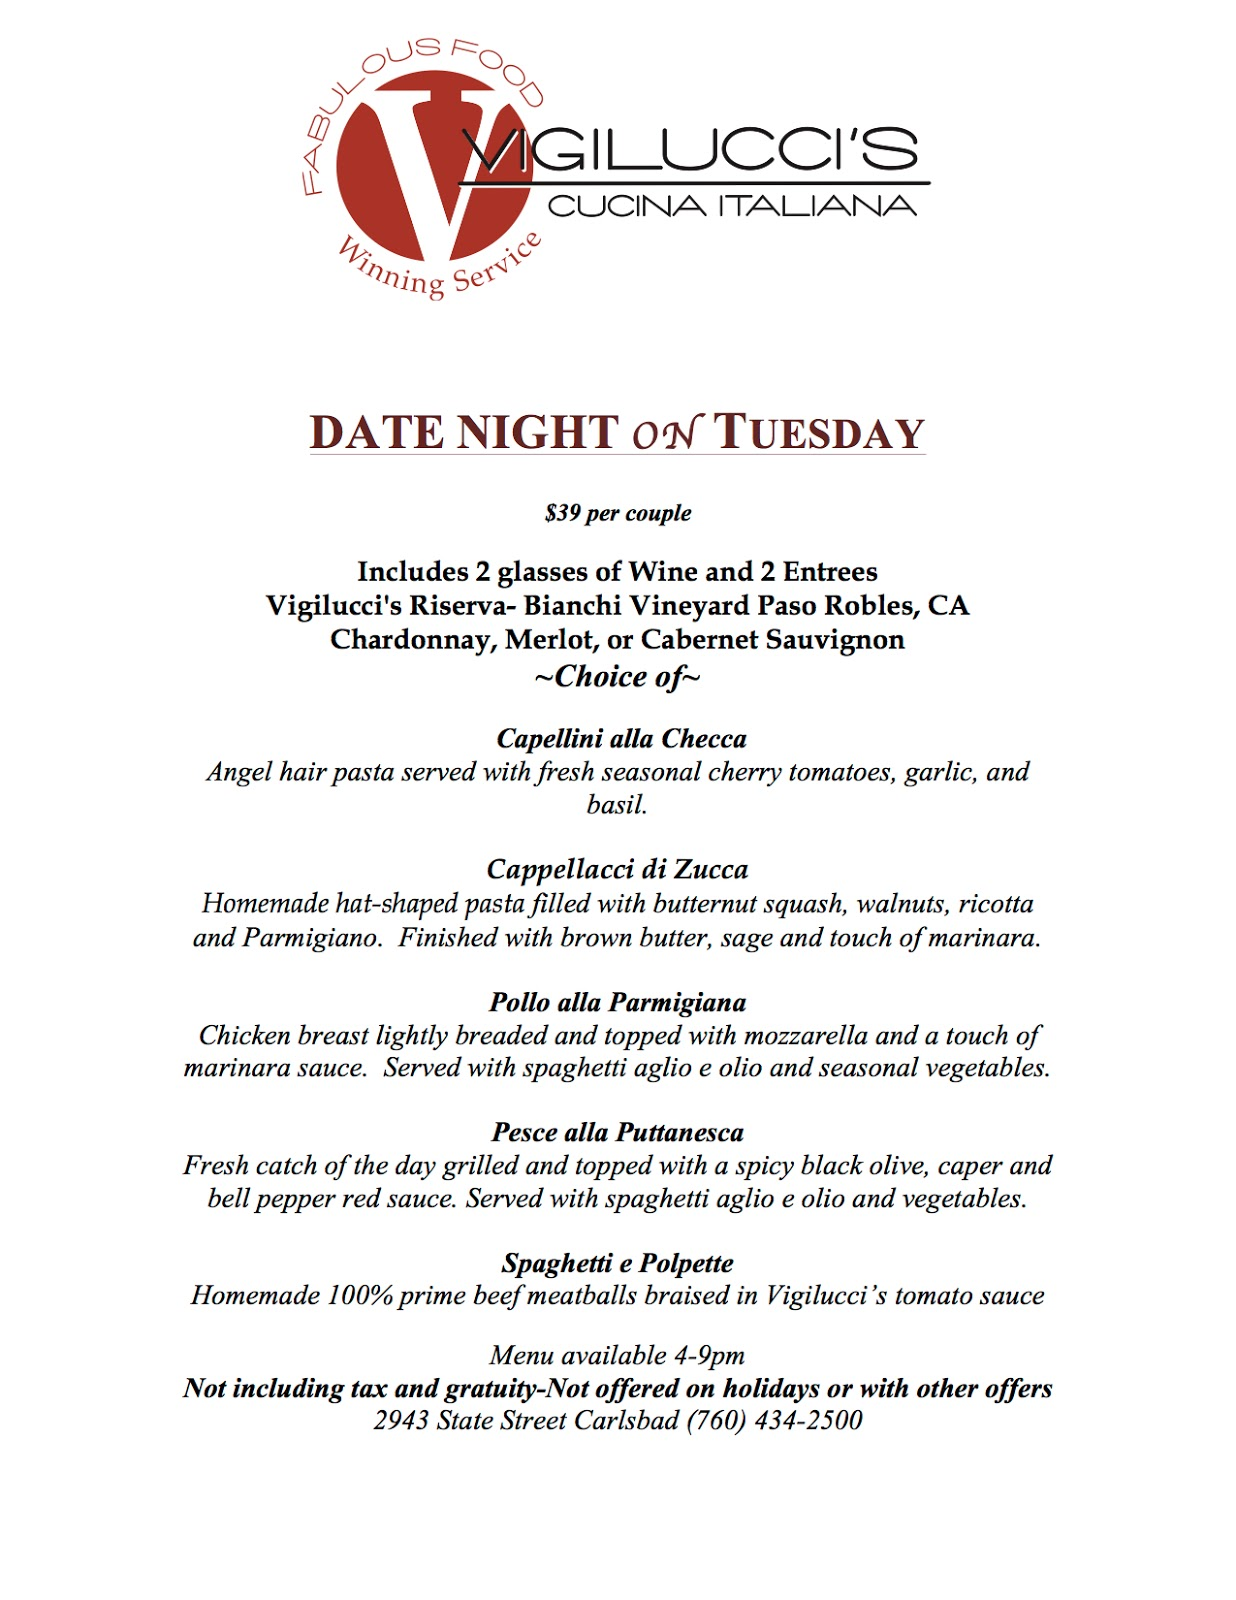 Vigilucci's Cucina Italiana Encinitas Sandiegoville Wine Dine Without Breaking The Bank With These 15